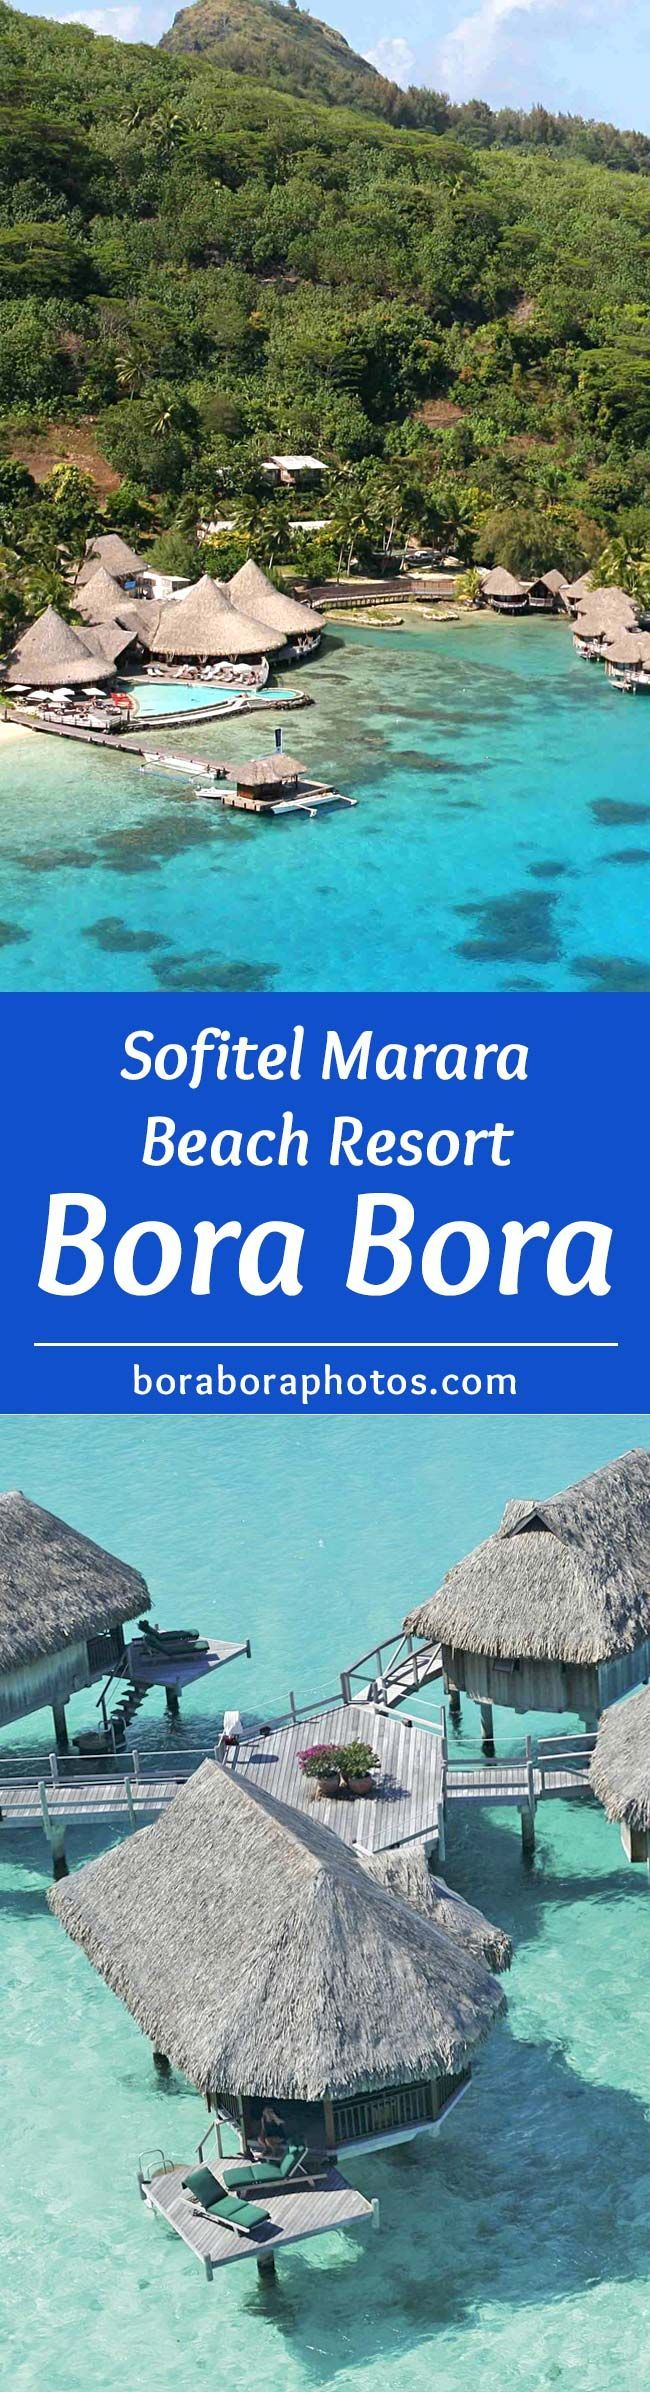 Sofitel Marara Beach Resort - Nestled on a private white sand beach on the edge of one of the most beautiful lagoons in the world, This Bora Bora island hotel is surrounded by exceptional views that draws honeymooners and those looking for the ultimate vacation in paradise.